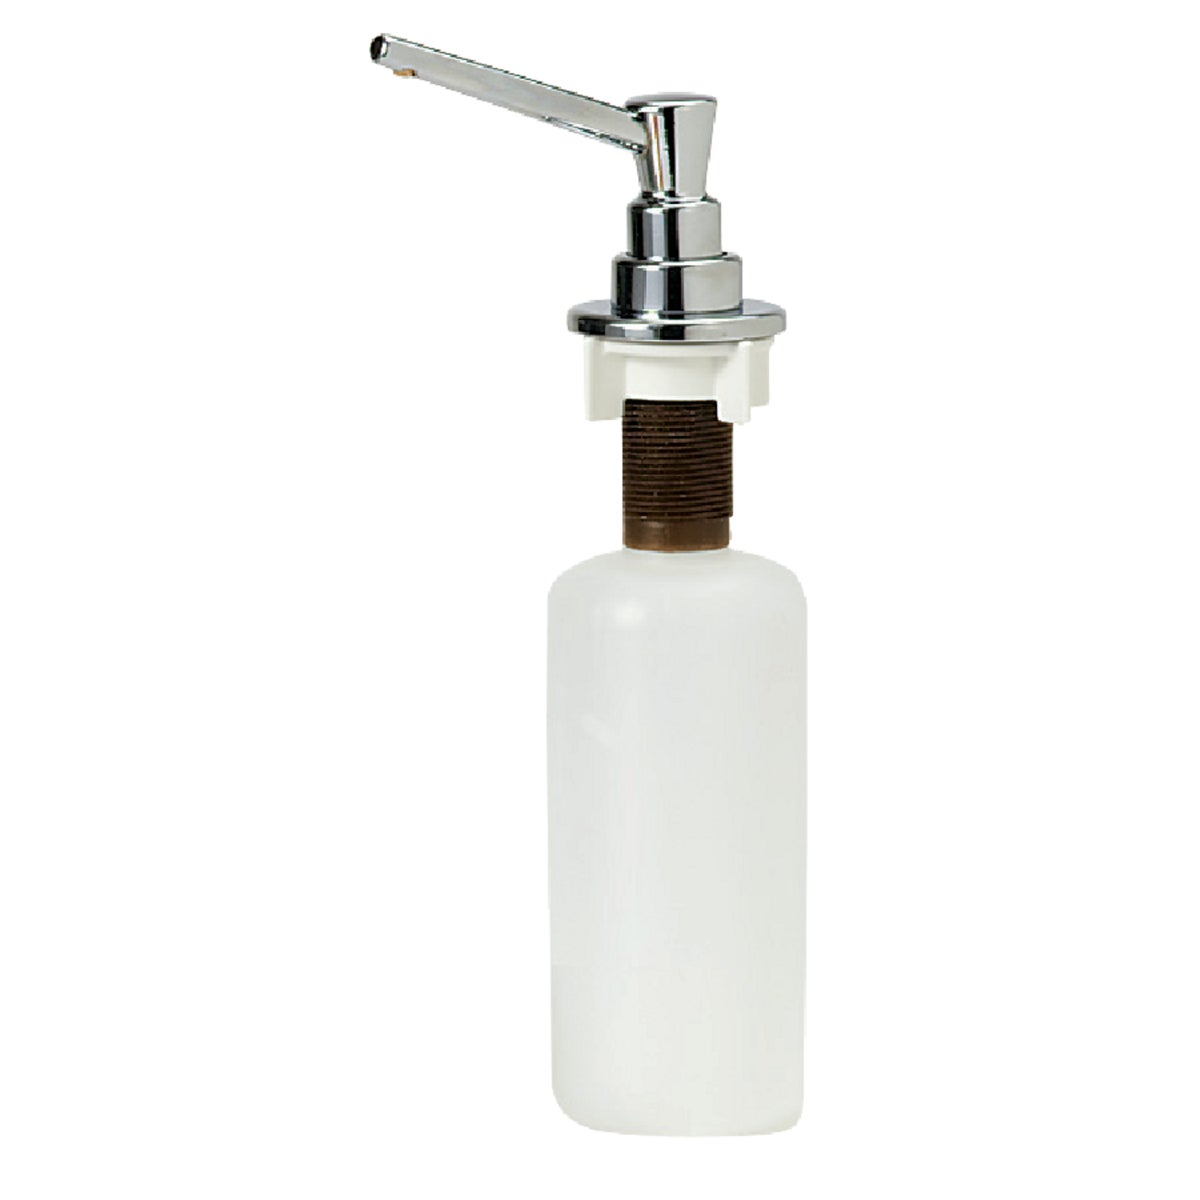 SOAP DISPENSER - RP1001 by Delta Faucet Co